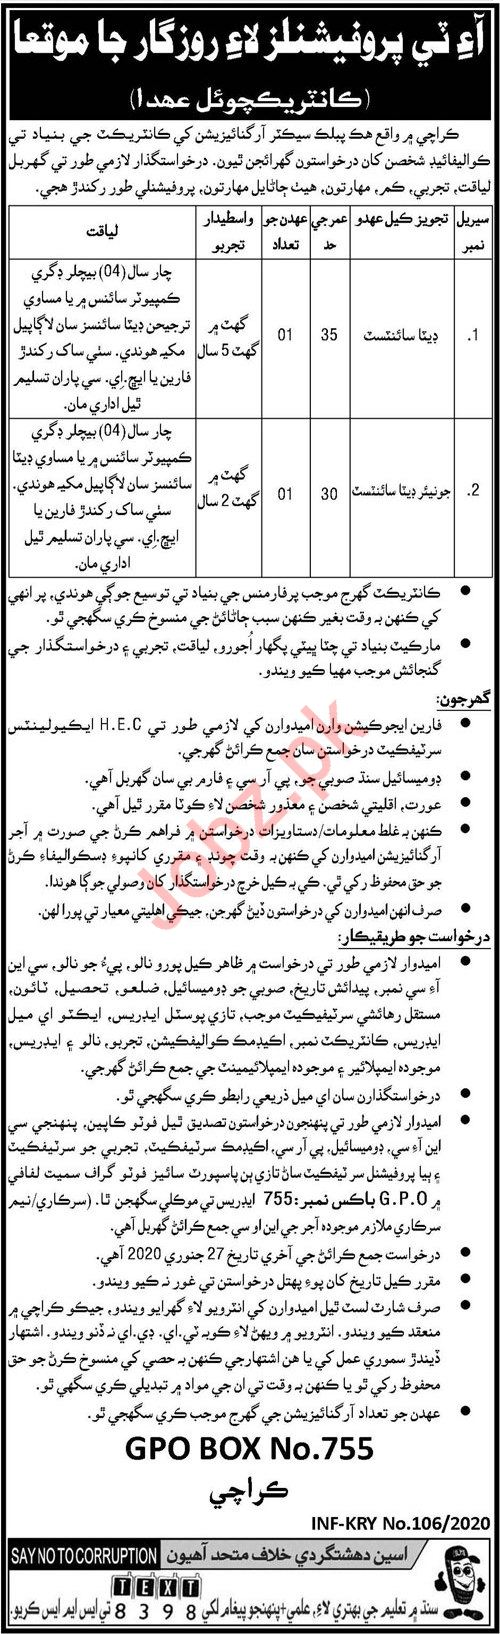 Public Sector Organization Karachi Jobs 2020